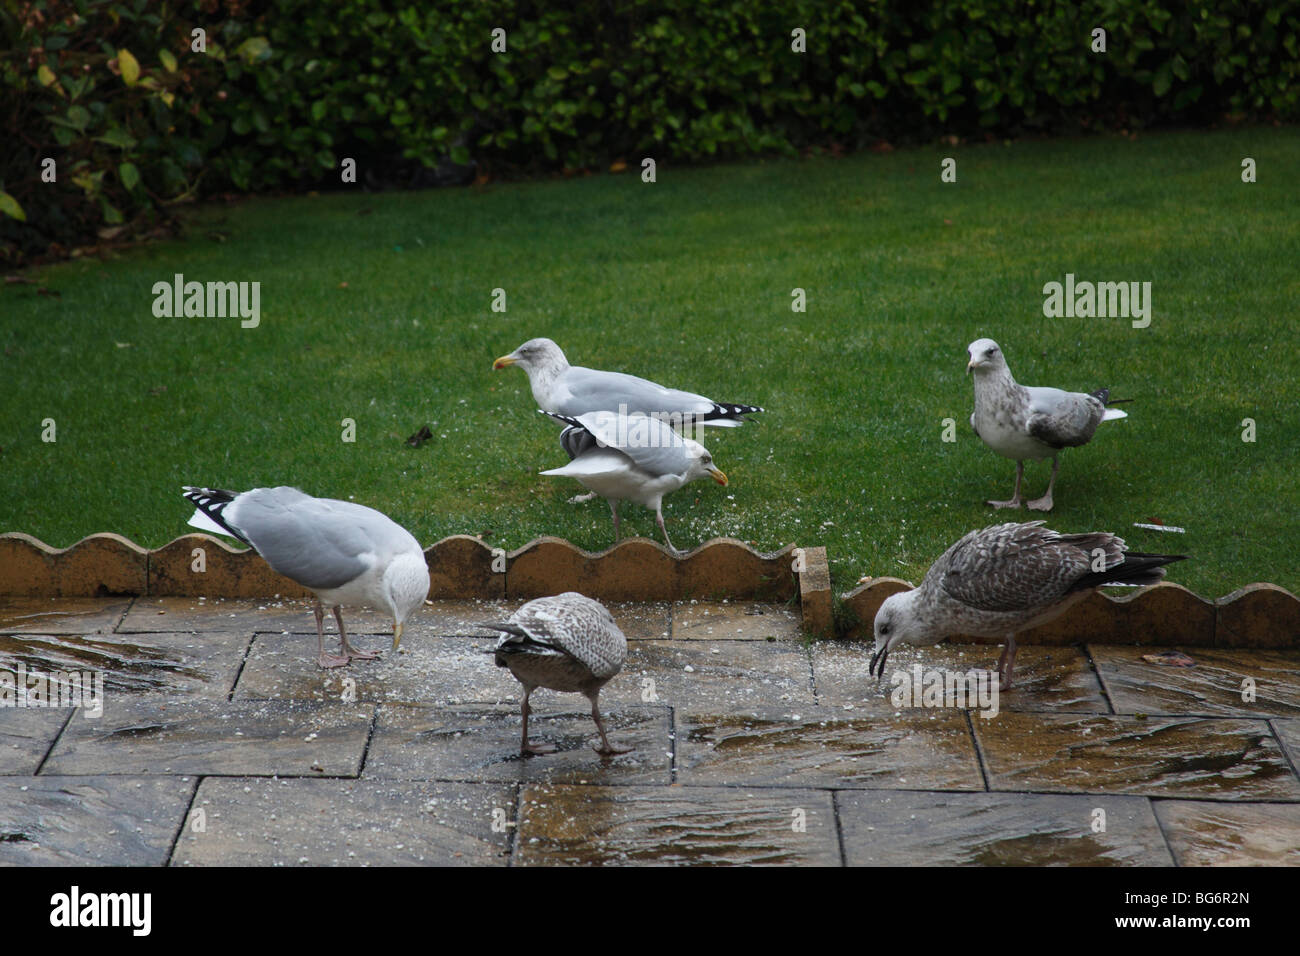 Herring gull (Larus argentatus) flock feeding on lawn - Stock Image